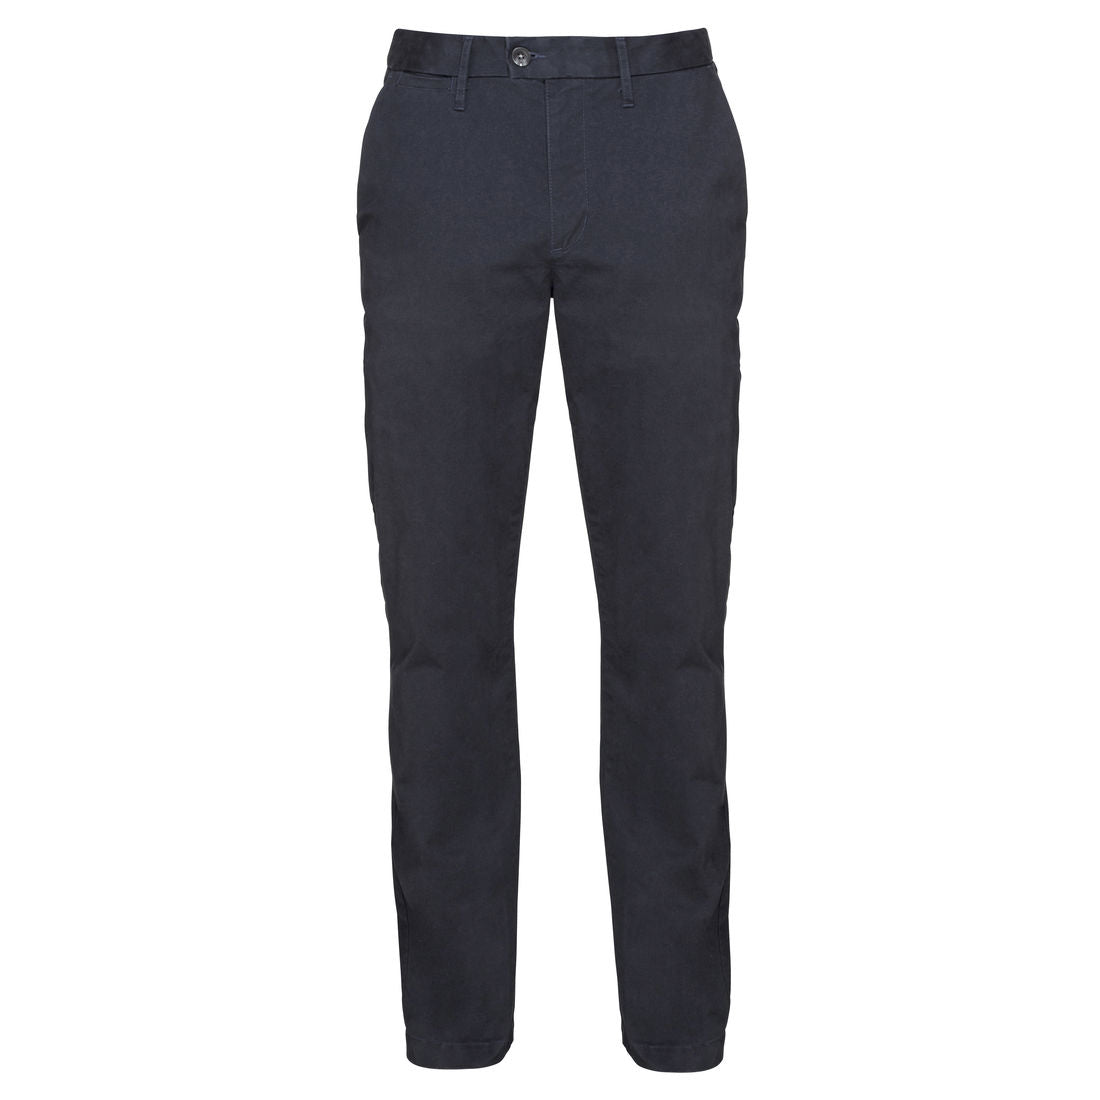 R.M.Williams Gibb Chino Regular Fit Navy